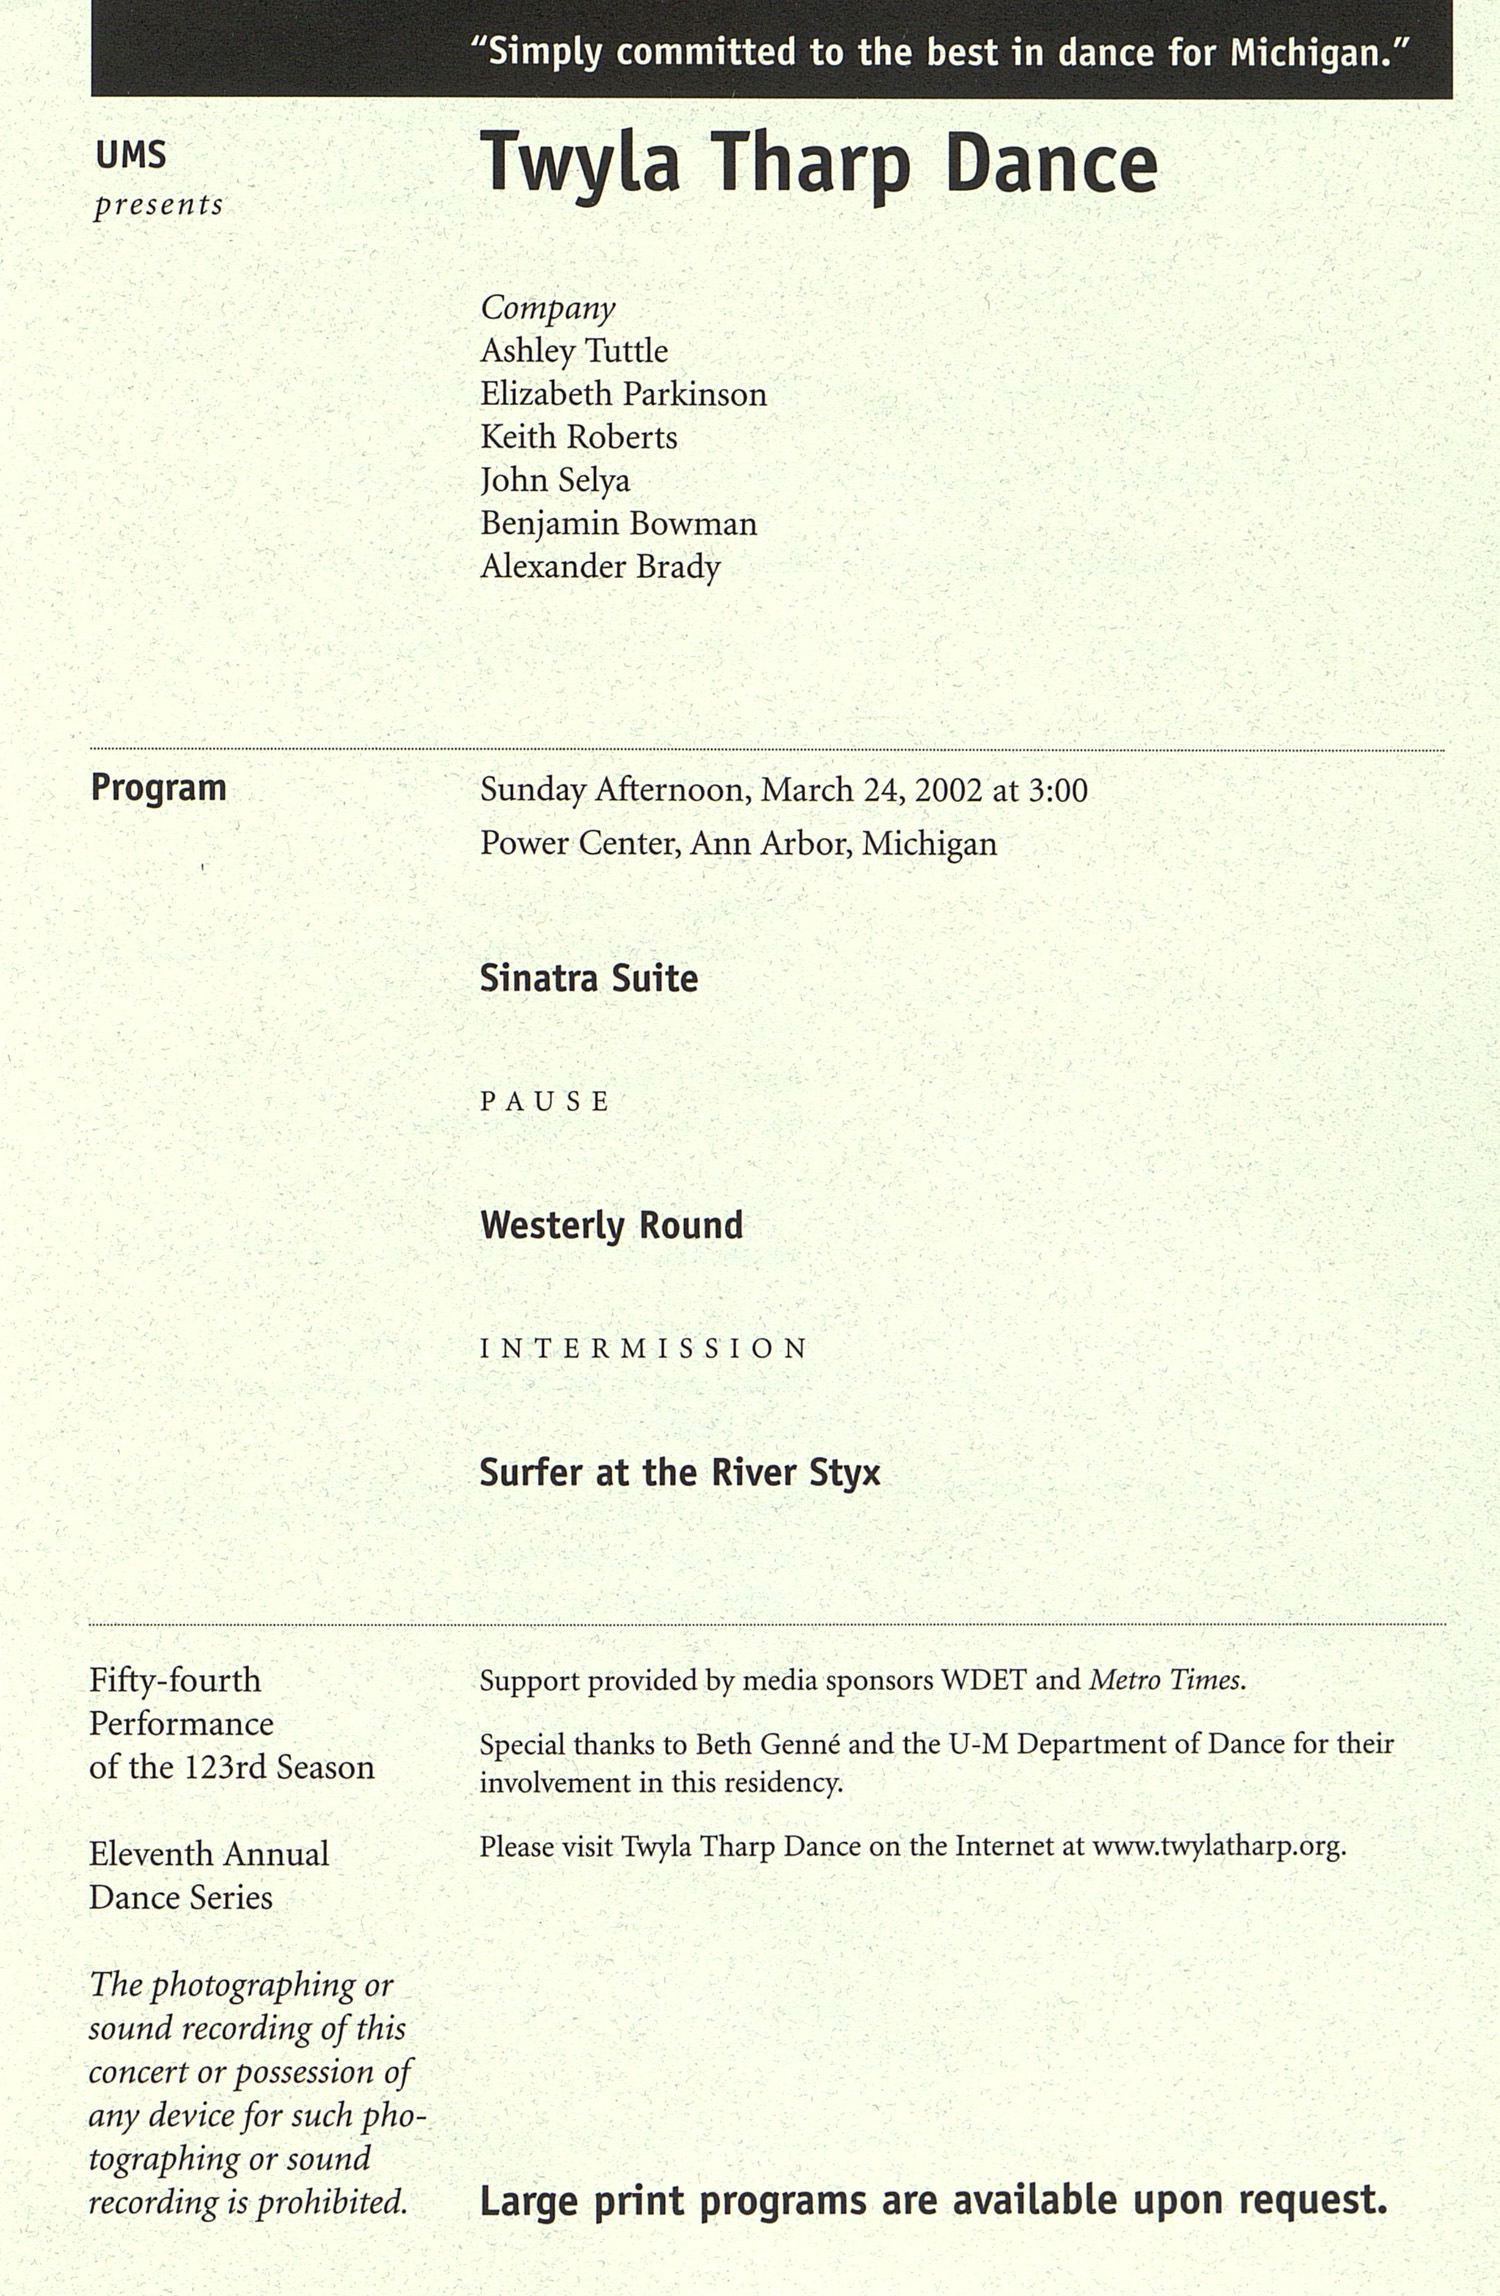 UMS Concert Program, Saturday Mar. 23 To Apr. 11: University Musical Society: 2002 Winter - Saturday Mar. 23 To Apr. 11 --  image